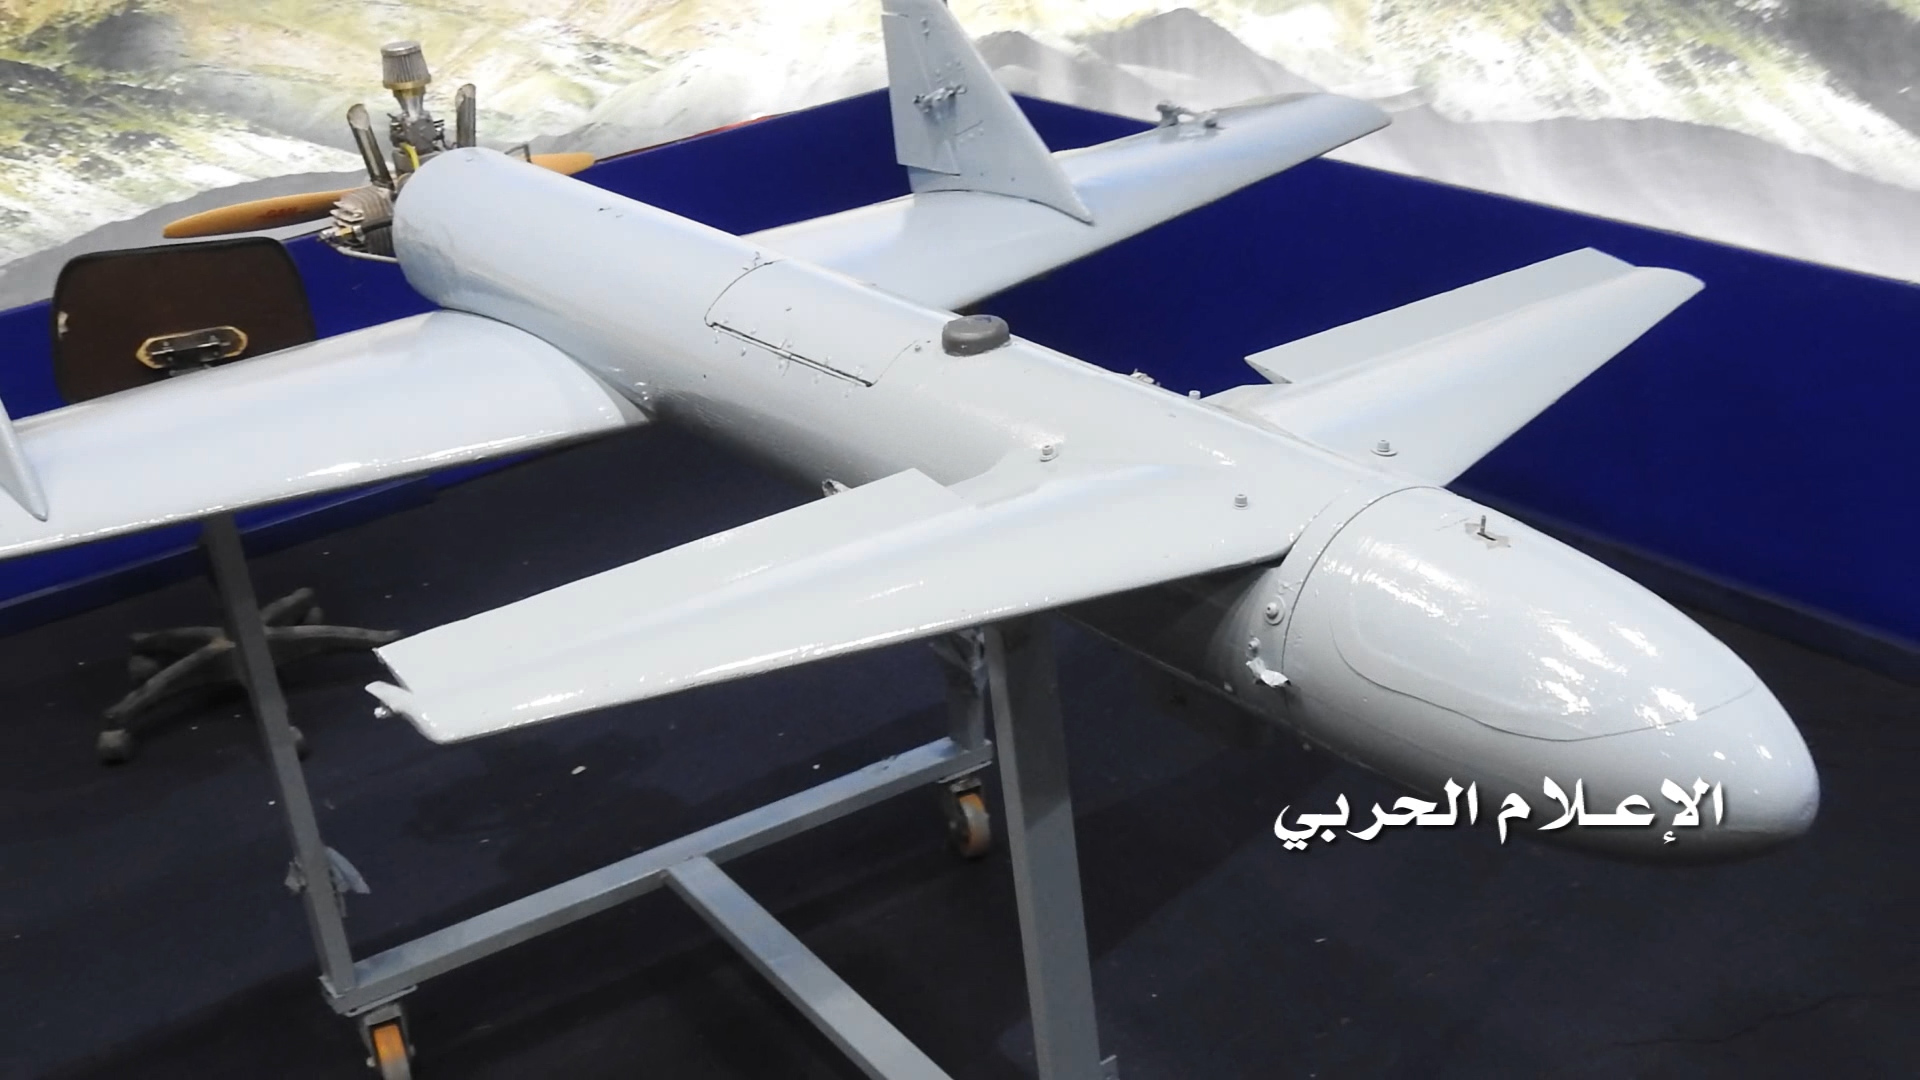 Houthis' Drones Attack Saudi-led Coalition Headquarter In Aden